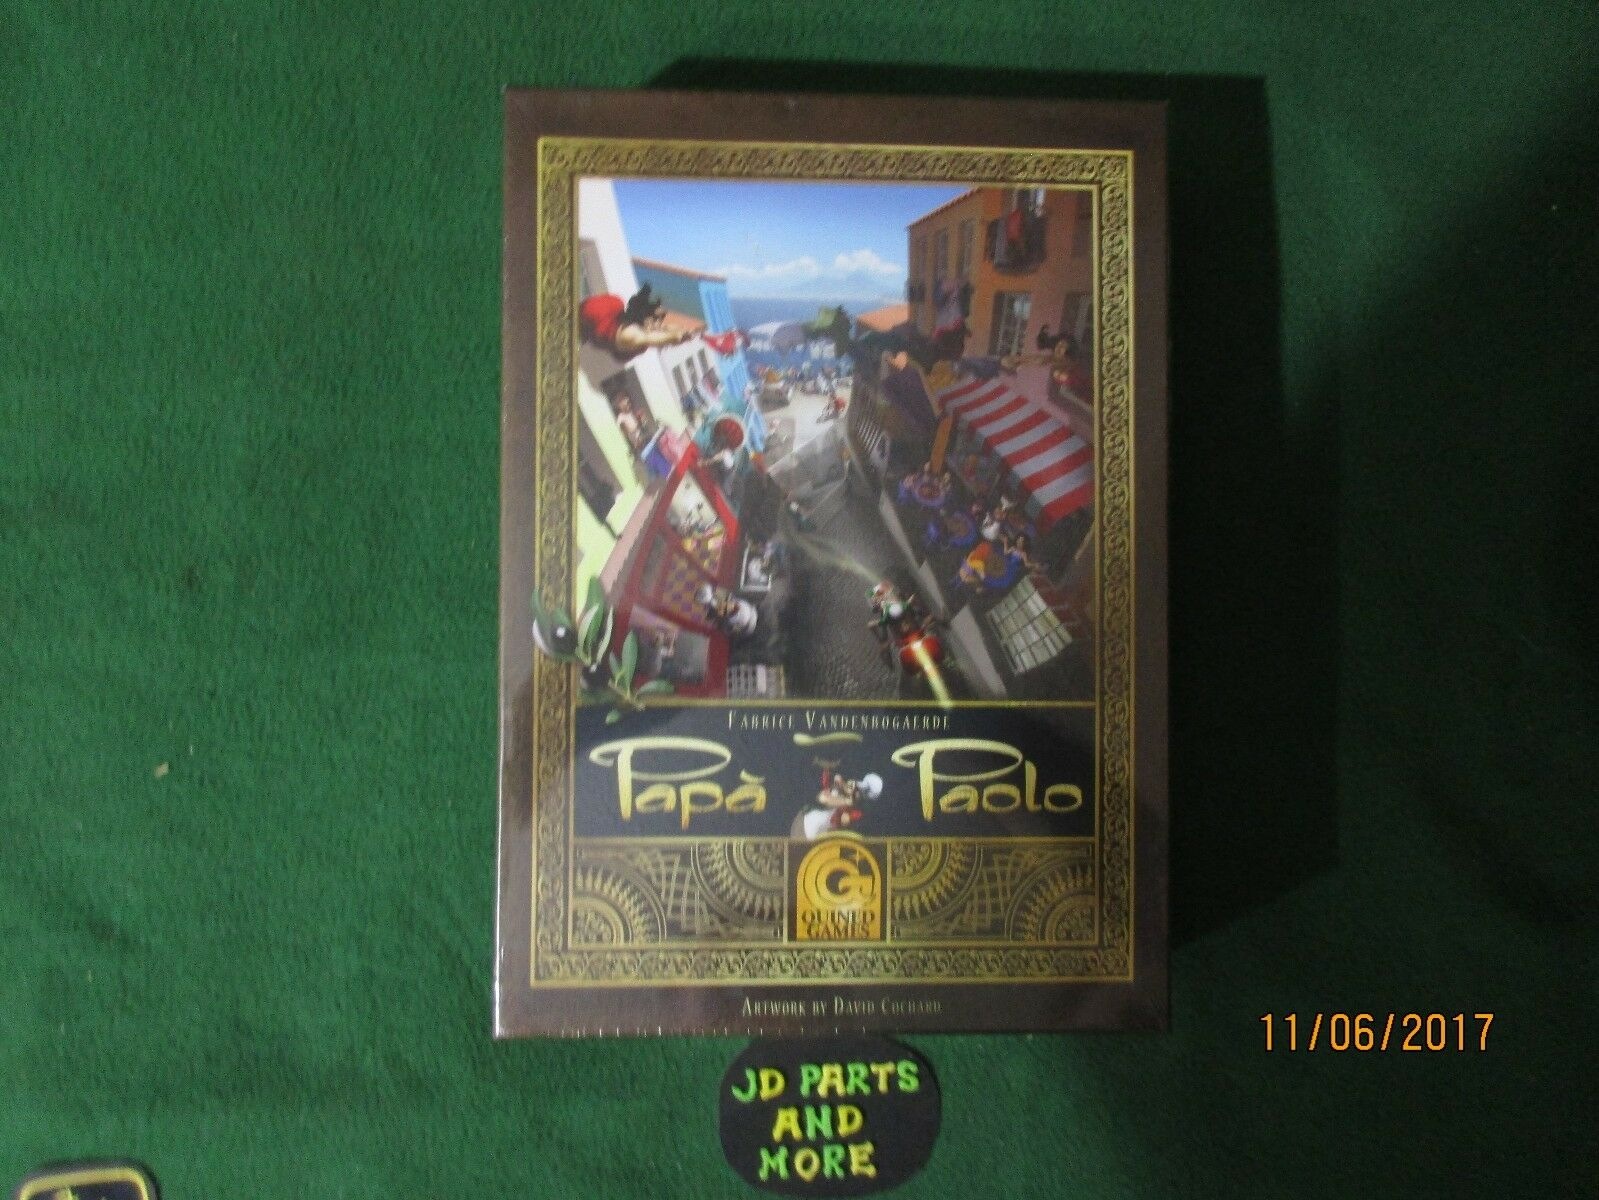 NEW SEALED UP QUINED GAMES  PAPA PAOLO